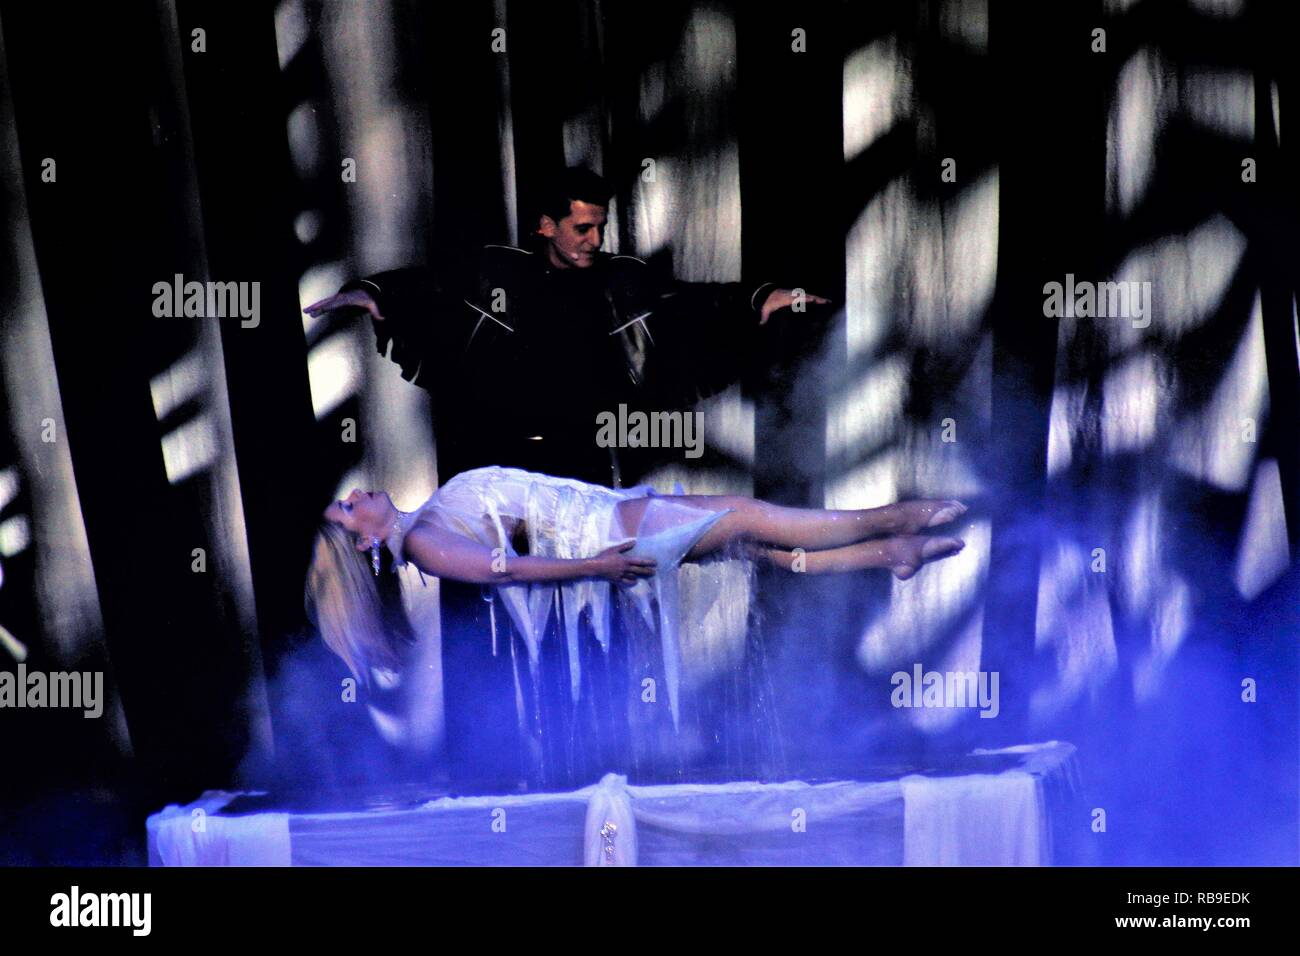 Athens, Greece. 6th Jan, 2019. A magician seen presenting the floating woman during the magical show.The best and the most awarded Las Vegas magicians presented figures that stunned between realism and illusion. Offering spectators magic humor and strong emotions at the Christmas Magic Festival in Athens. Credit: Helen Paroglou/SOPA Images/ZUMA Wire/Alamy Live News - Stock Image